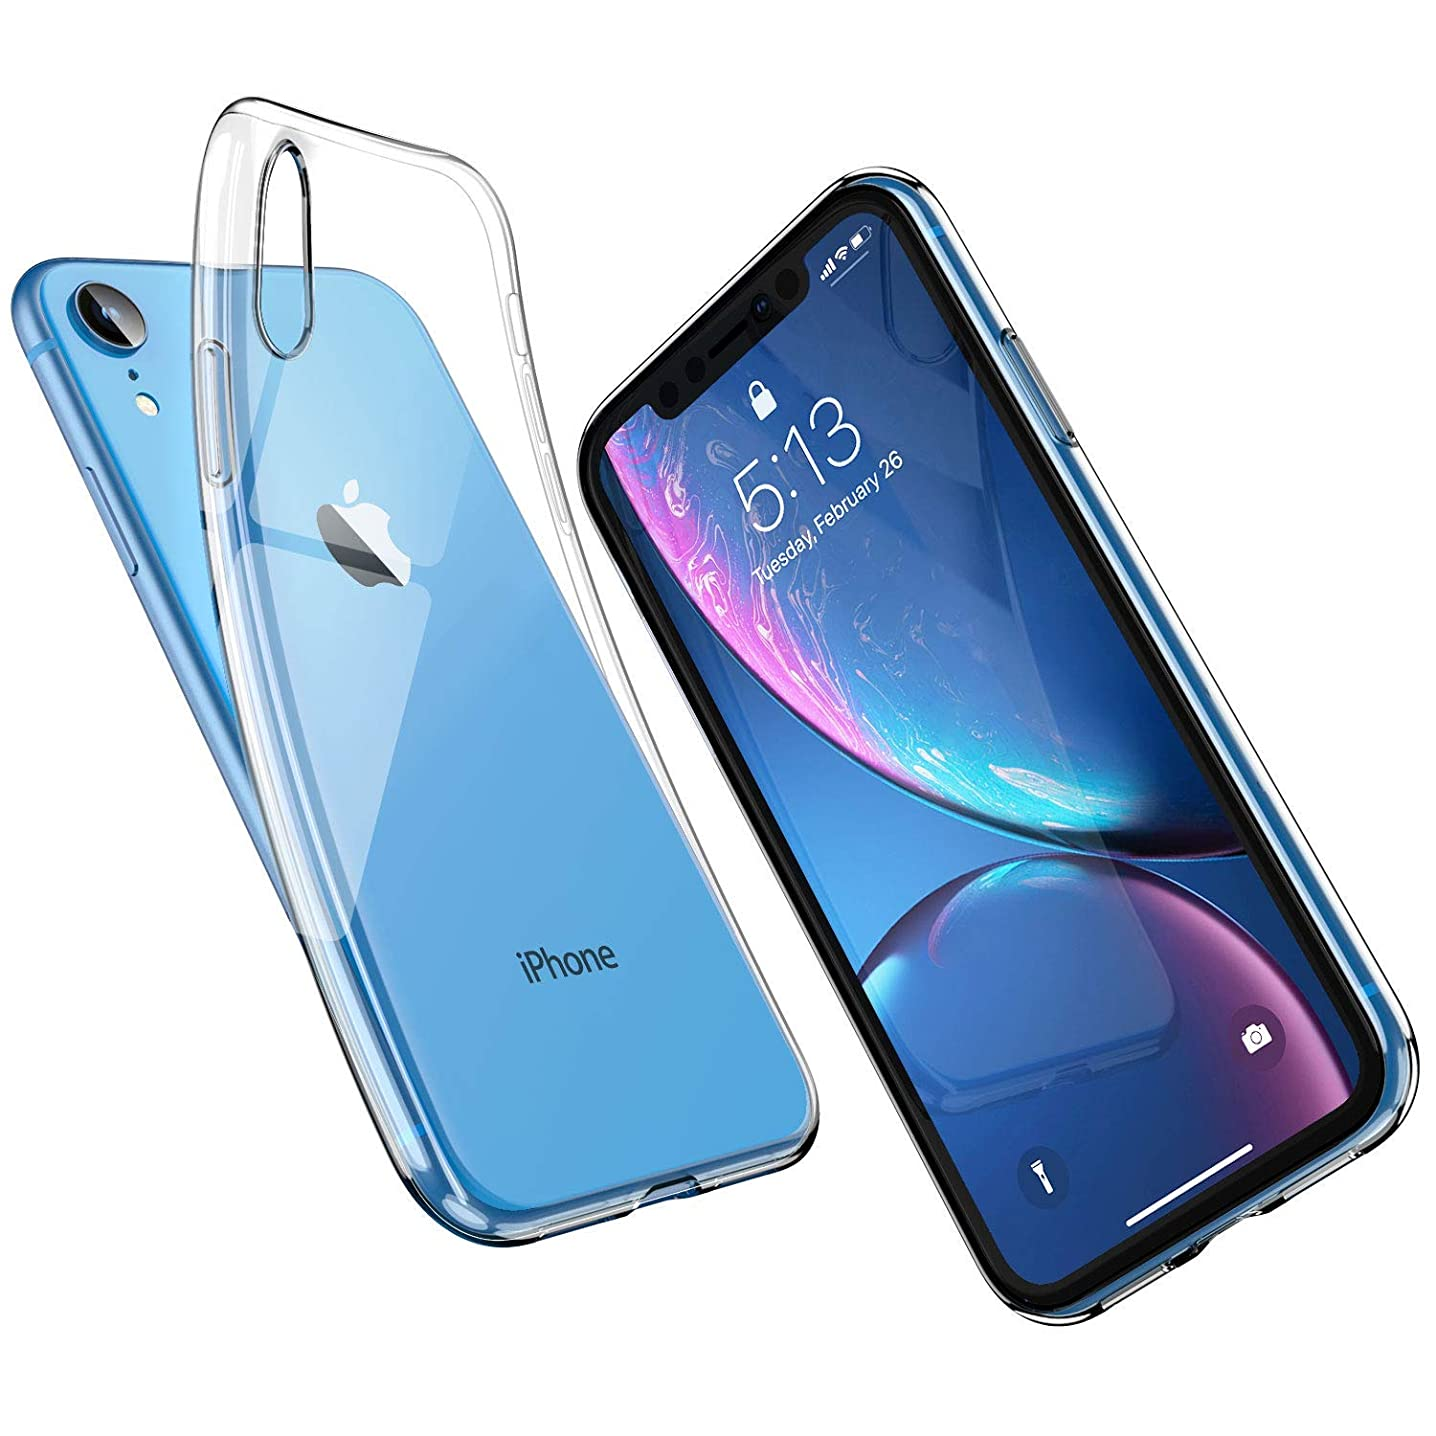 UNBREAKcable iPhone XR Case [Crystal Clear]- Ultra-Thin, Slim Soft TPU Silicone Protective Transparent Case Cover for Apple iPhone XR